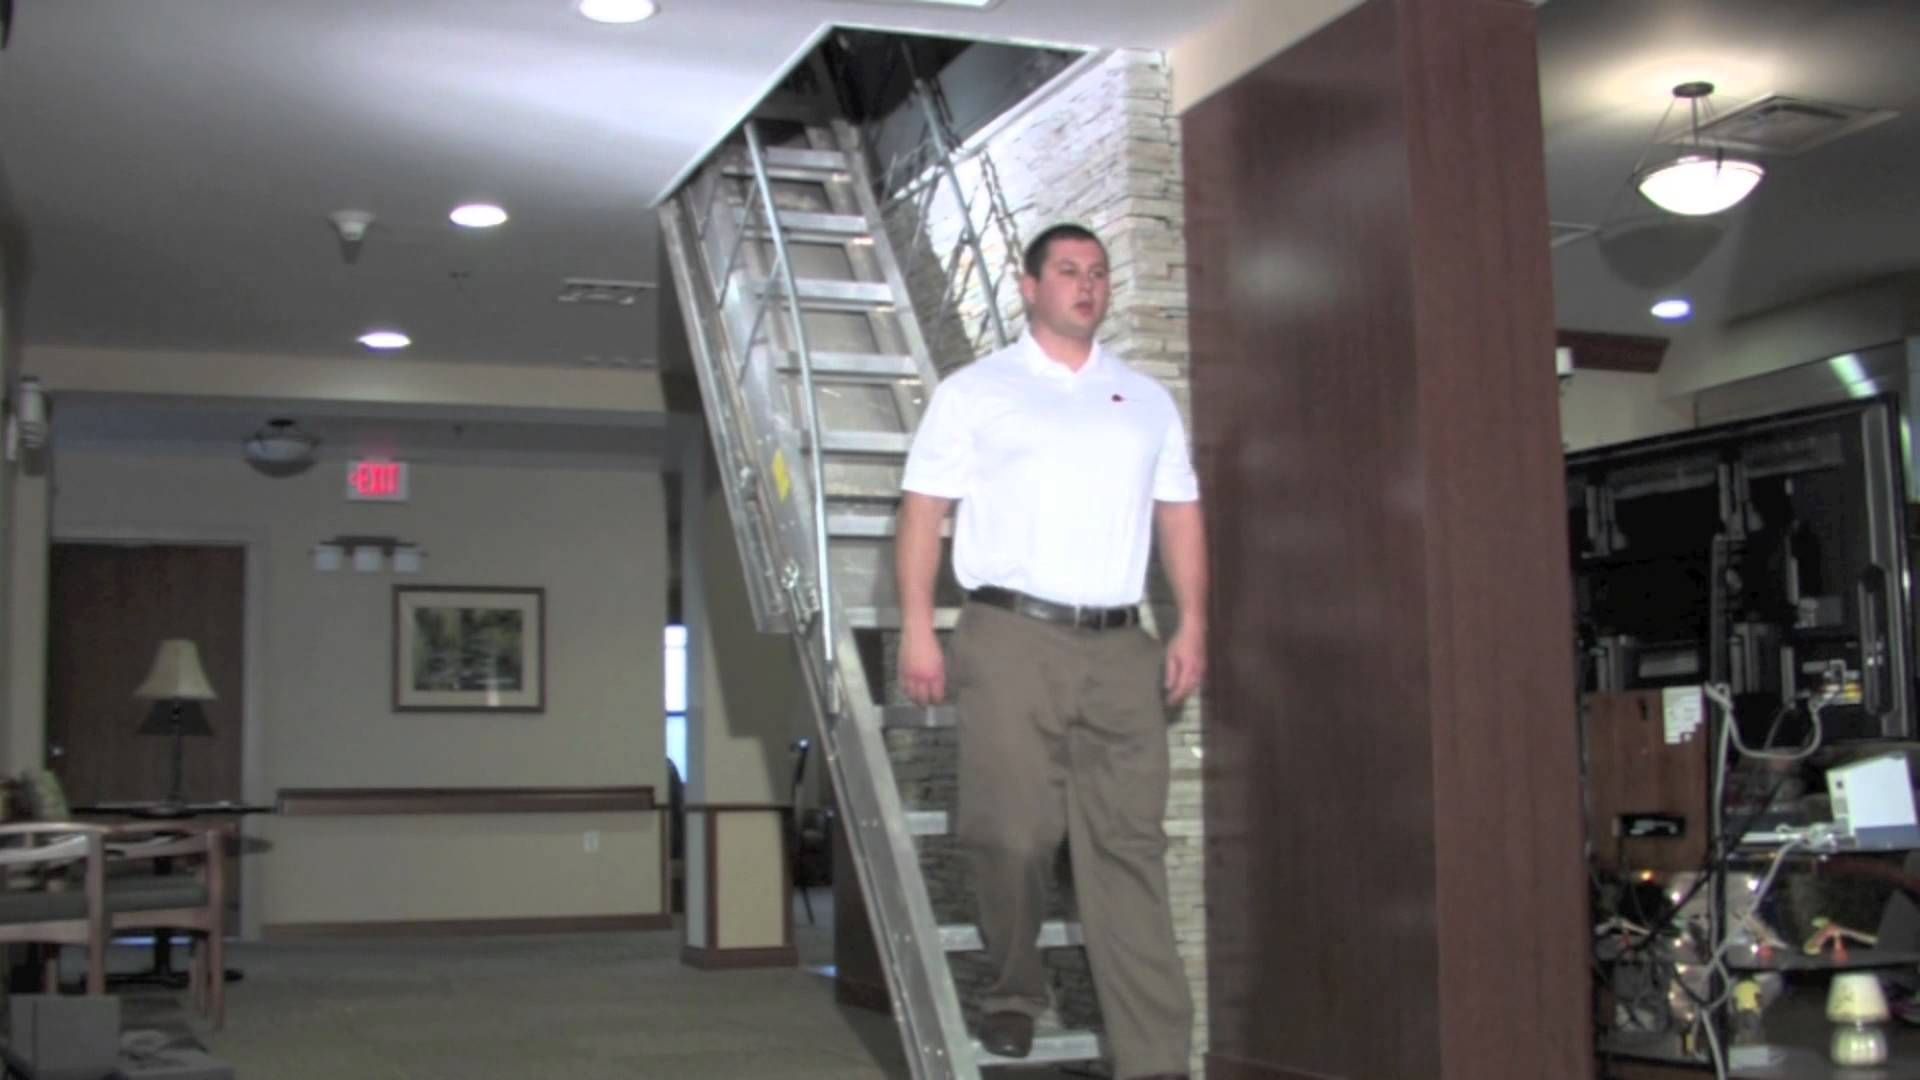 Merveilleux Precision Ladders Automatic Electric Disappearing Attic Stairs .